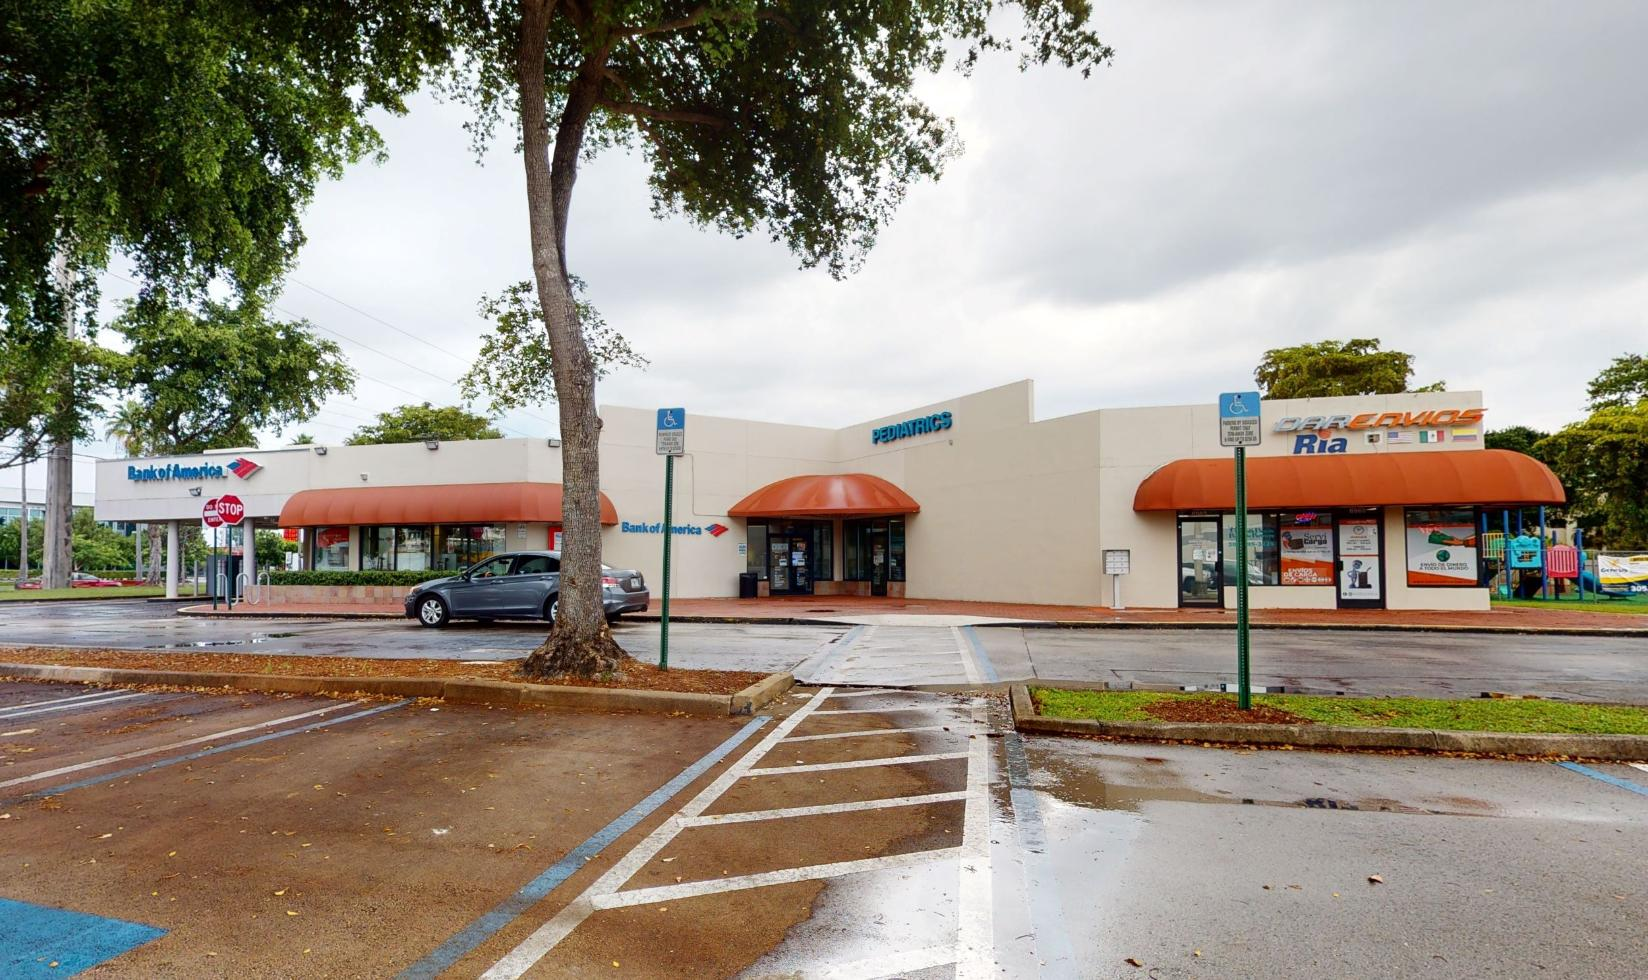 Bank of America financial center with drive-thru ATM and teller   6901 SW 117th Ave, Miami, FL 33183